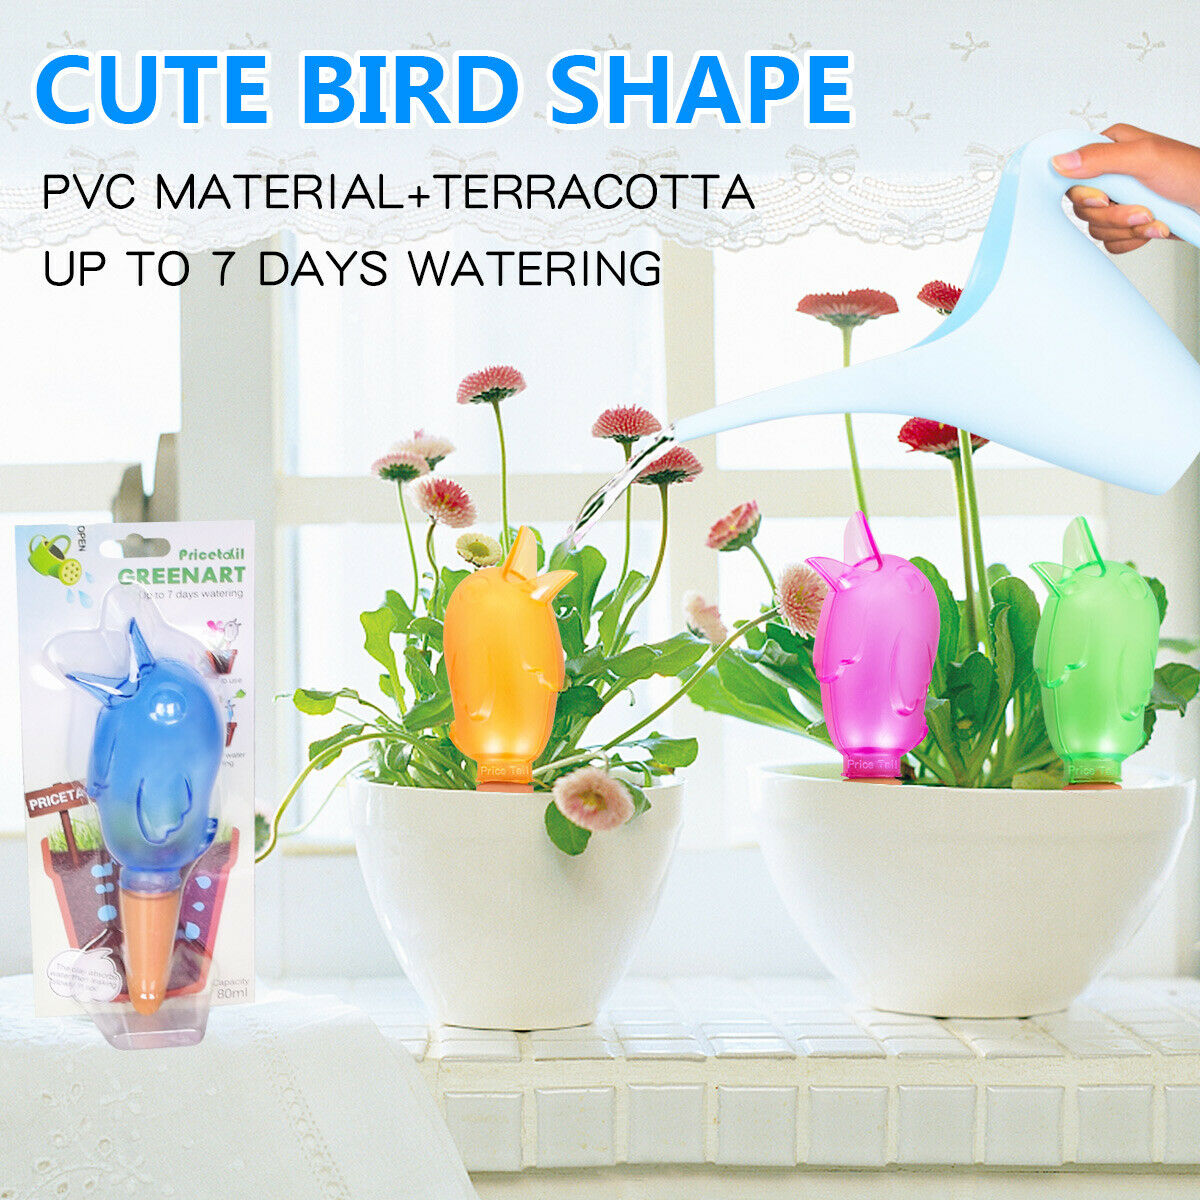 Automatic Self Watering Device for Outdoor Plants Bird Shaped Plant Waterer Vacation Drip Irrigation Watering Stakes for Indoor /& Outdoor Plants Blue Plant Self Watering Spikes Devices